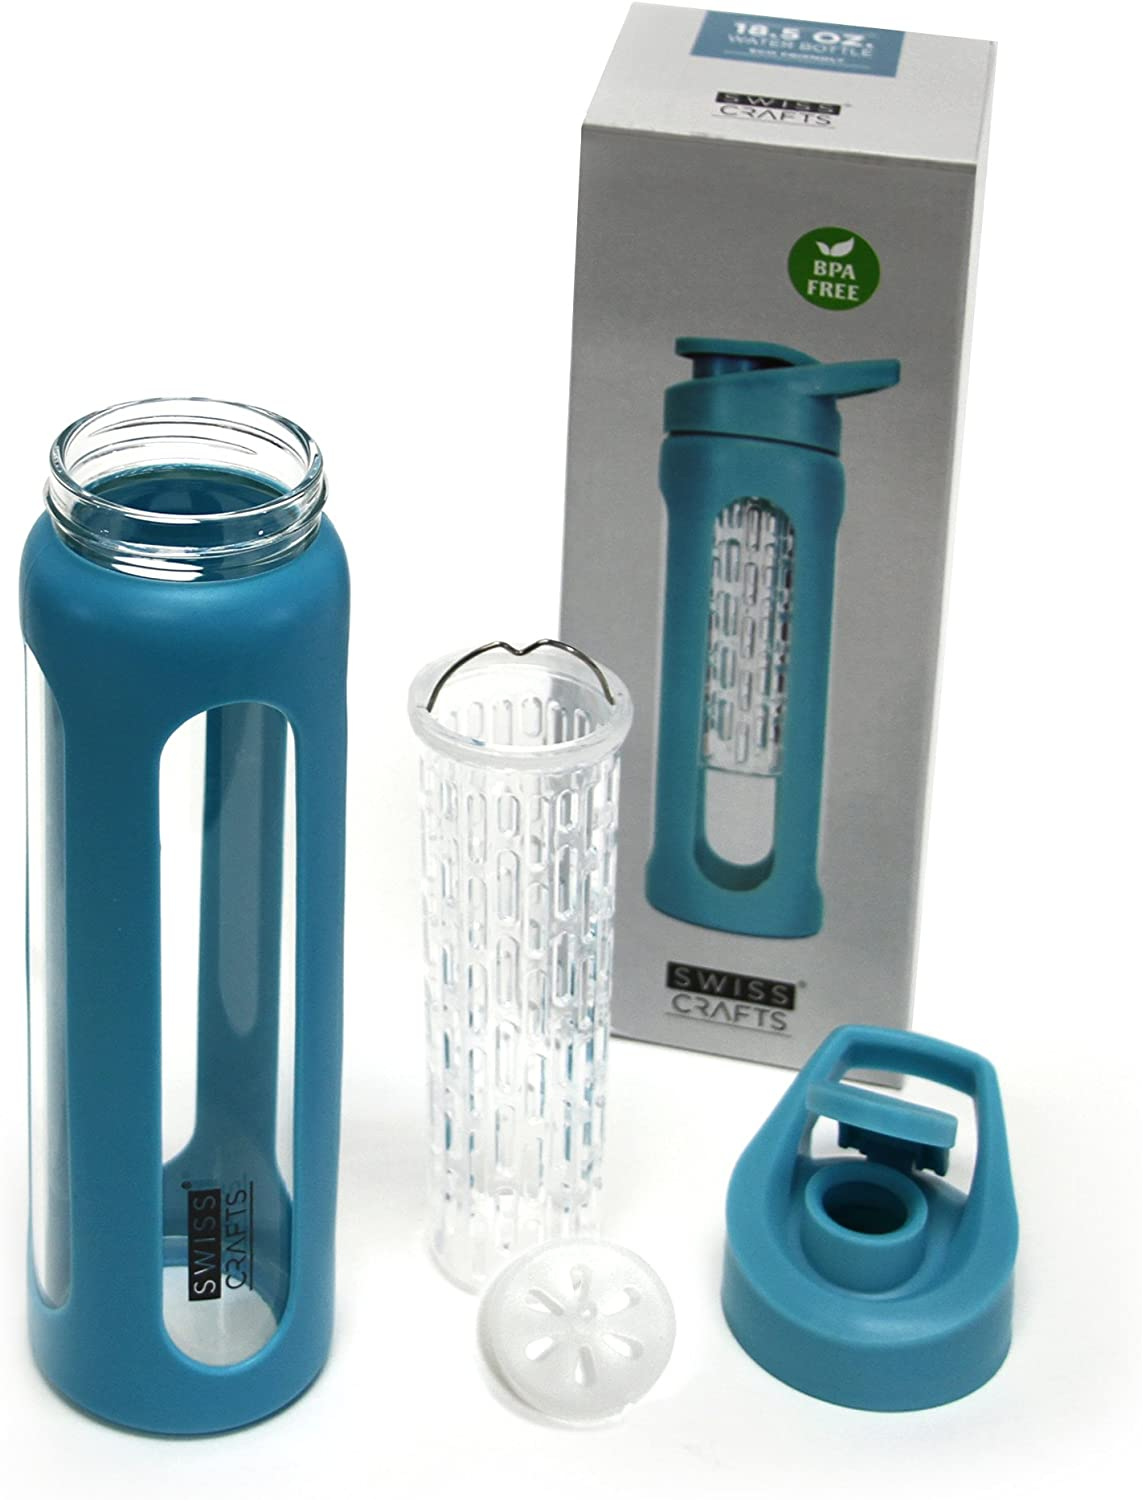 Eco Friendly Non-Toxic-Break Resistant Borosillicate Glass 18.5 Oz Sport Bottle with Infusion and Protective Silicone Sleeve With Leak-proof Caps Swiss Craft Fruit Infuser Water Bottle BLUE, 1 SET